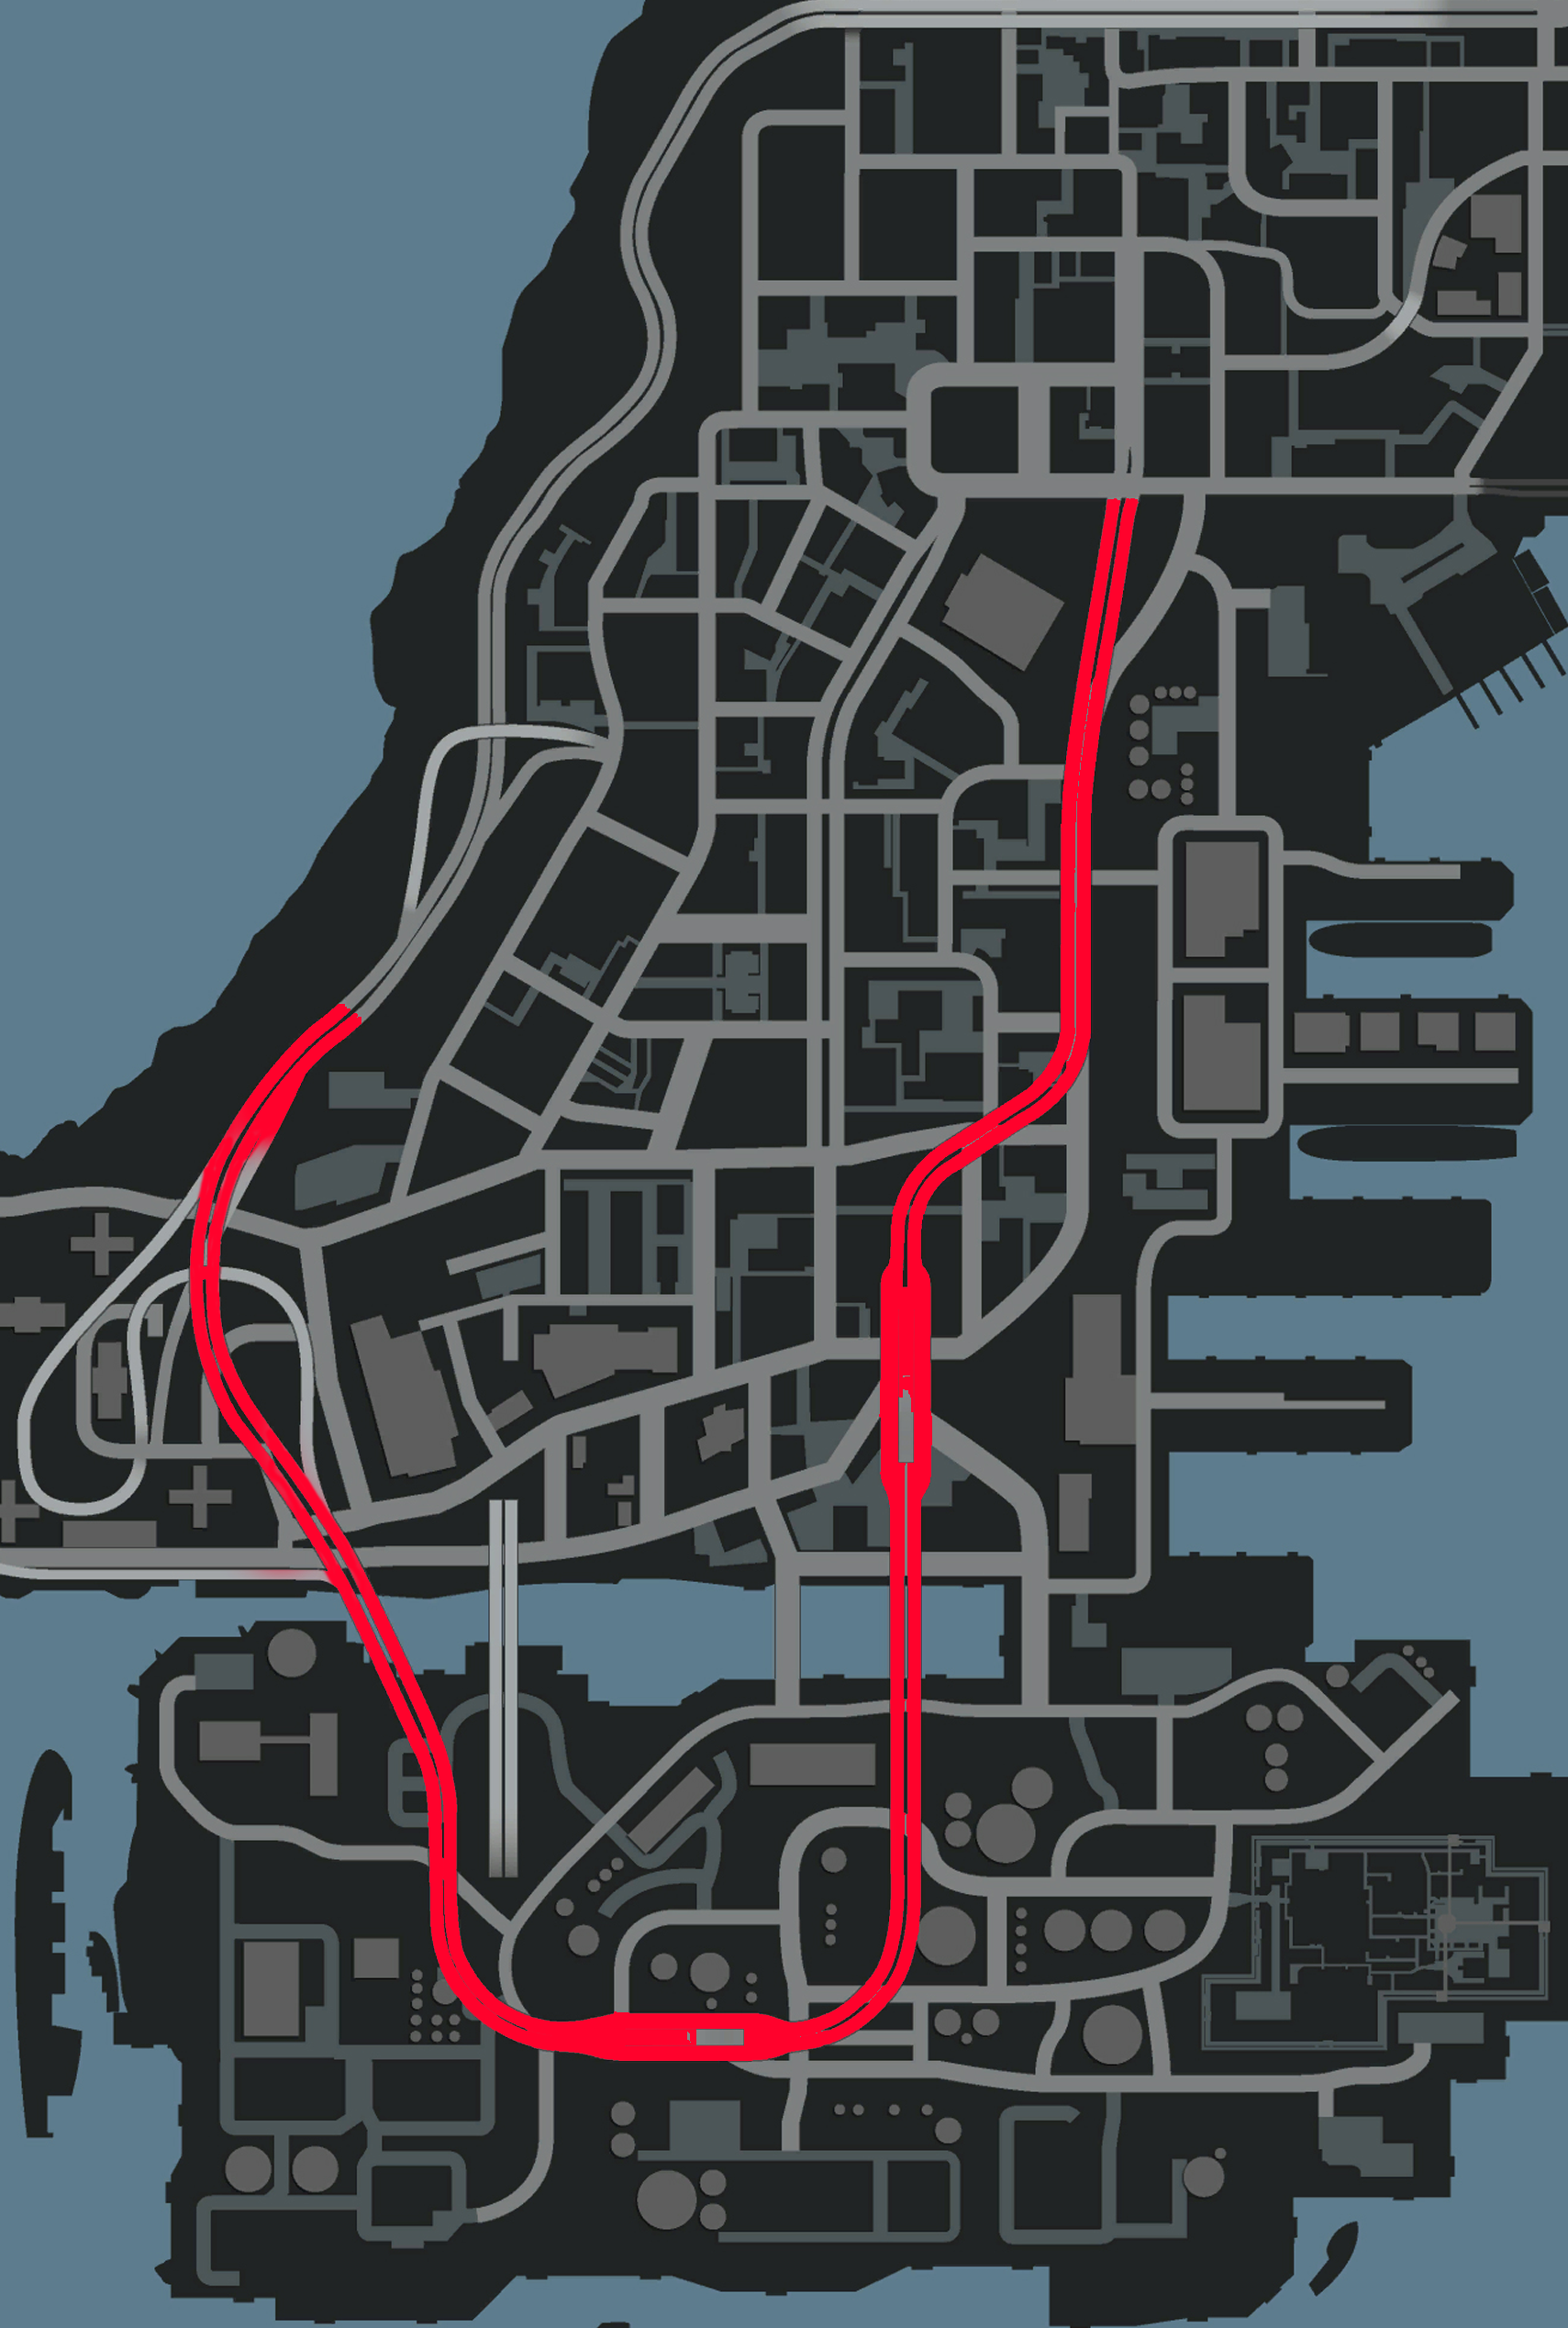 The Plumbers Skyway marked on the map